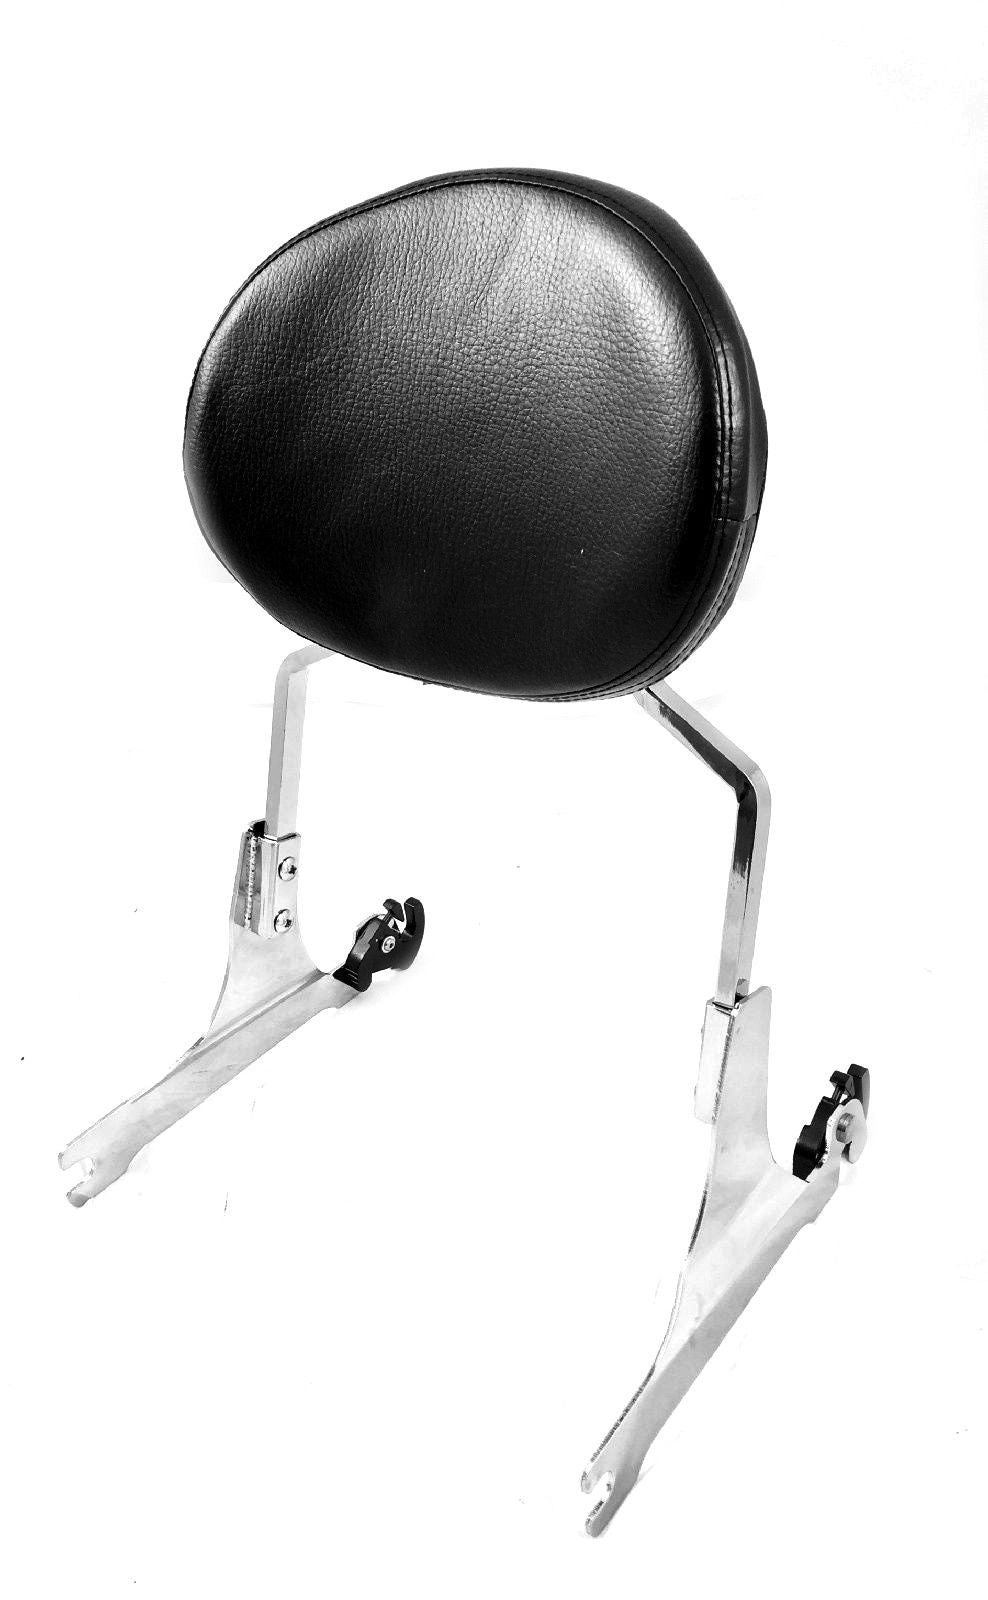 Quick Detachable Sissy Bar With Backrest Harley FXST FLST Models 200mm Rear Tire